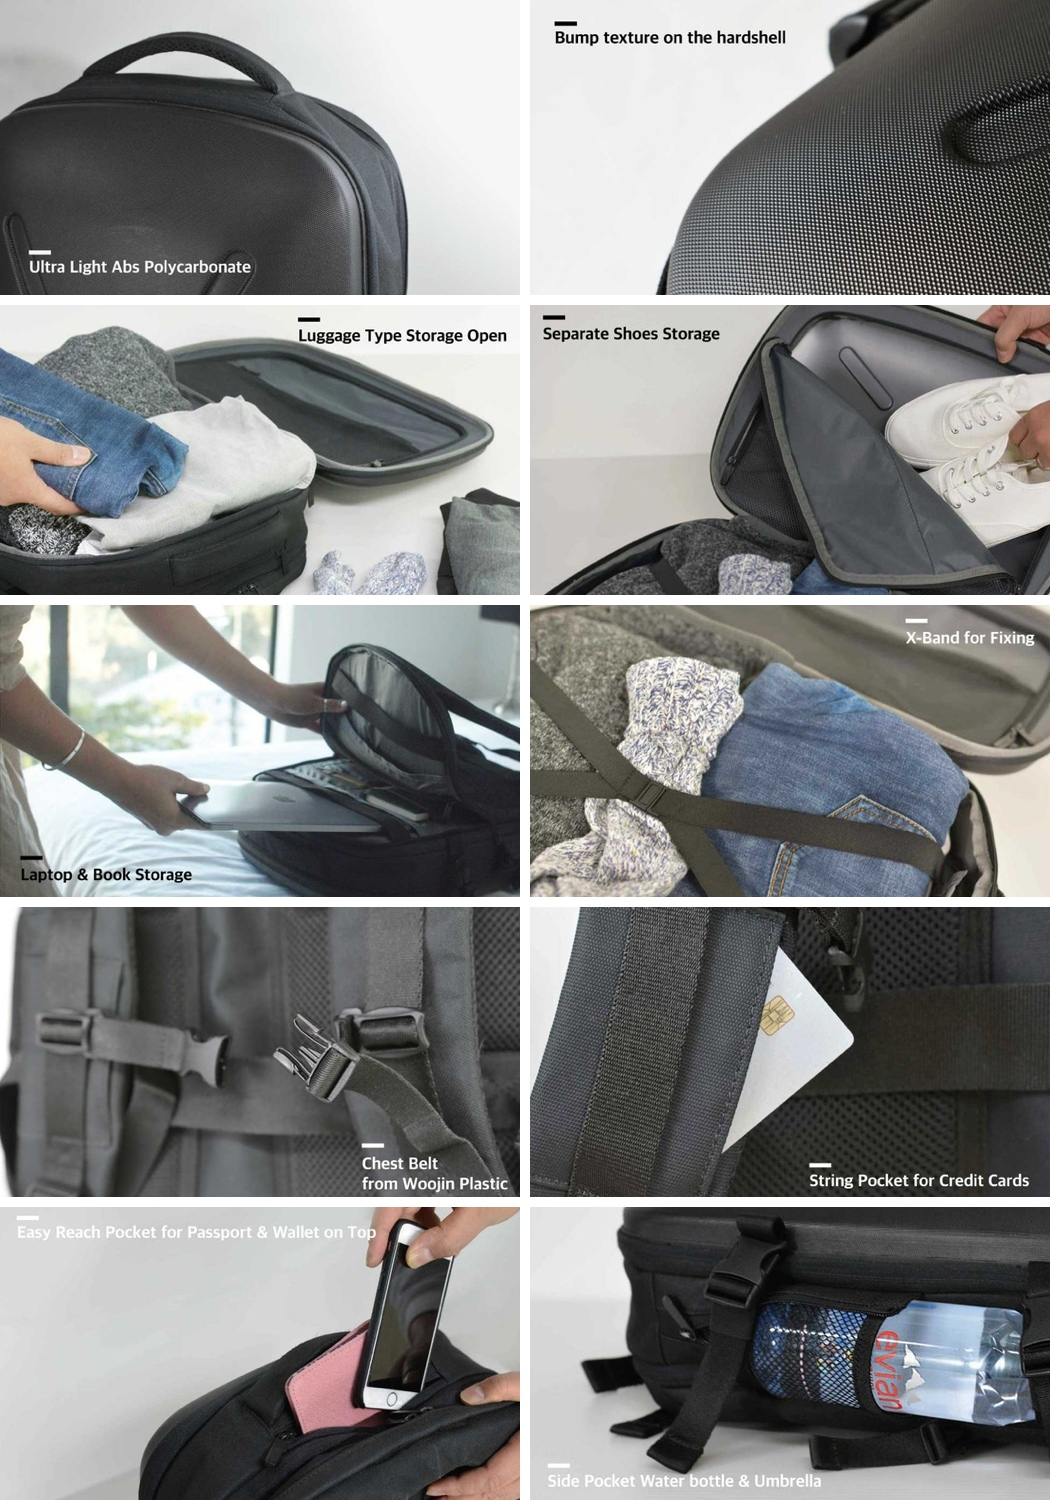 jerrybagshield_unbreakable_backpack_06